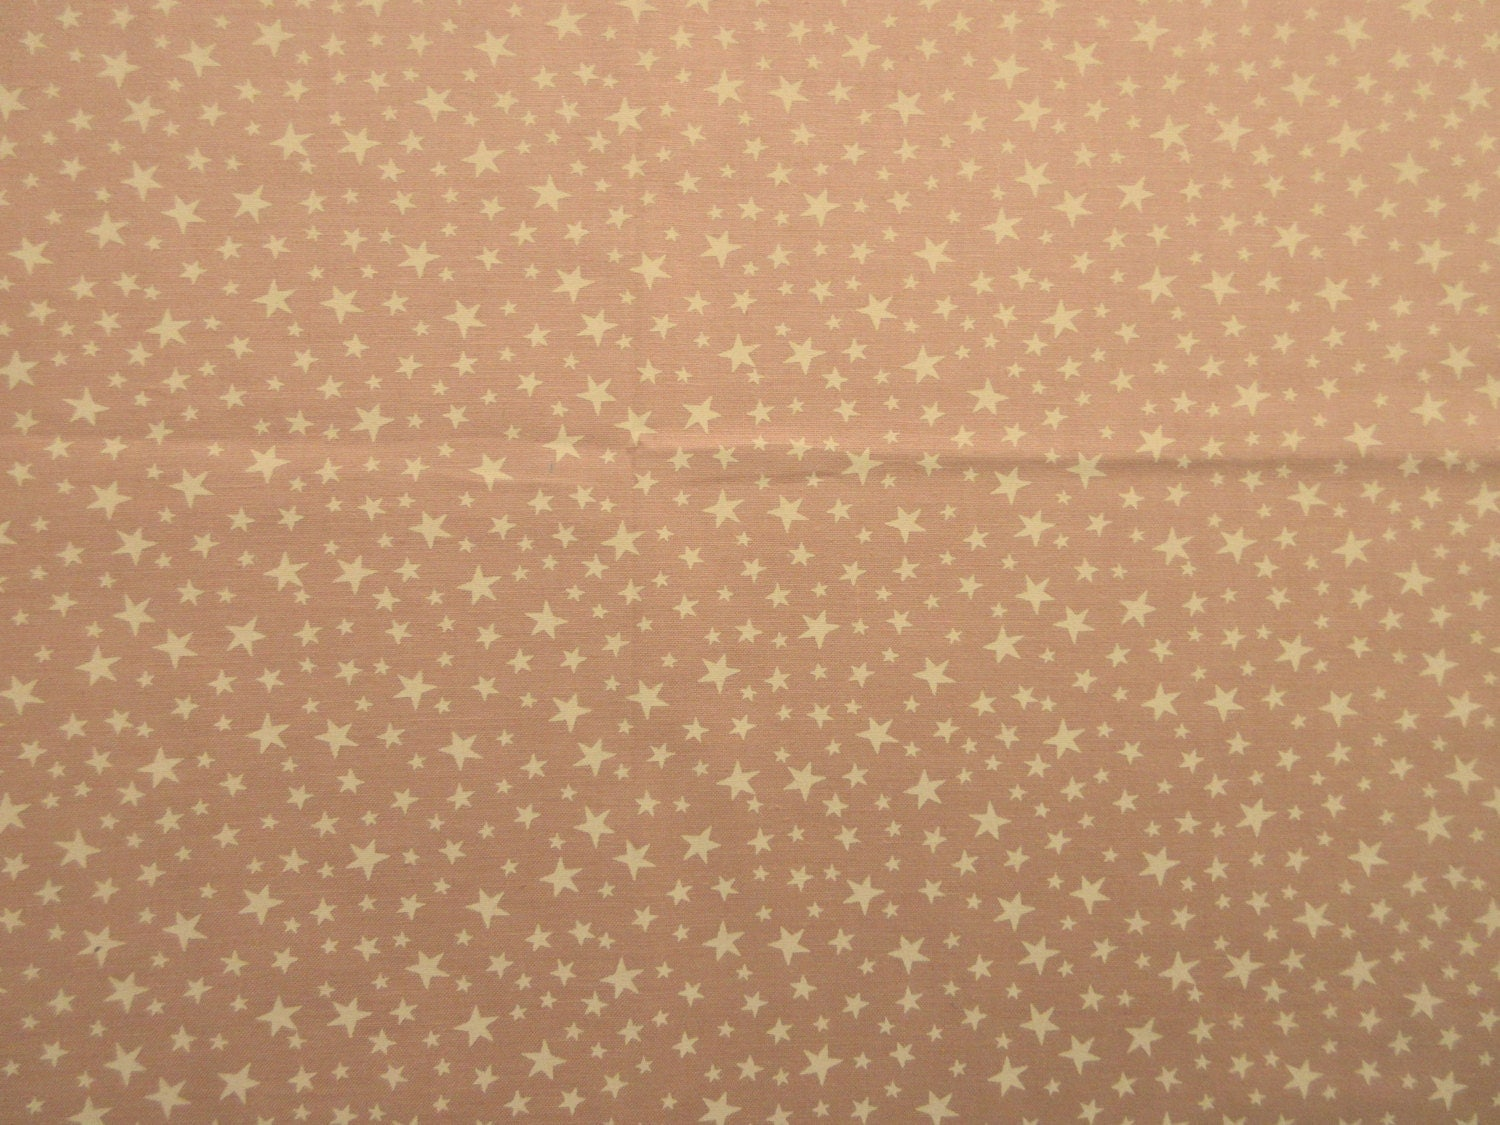 Gold stars fabric christmas everyday by ann wanke for for Star fabric australia